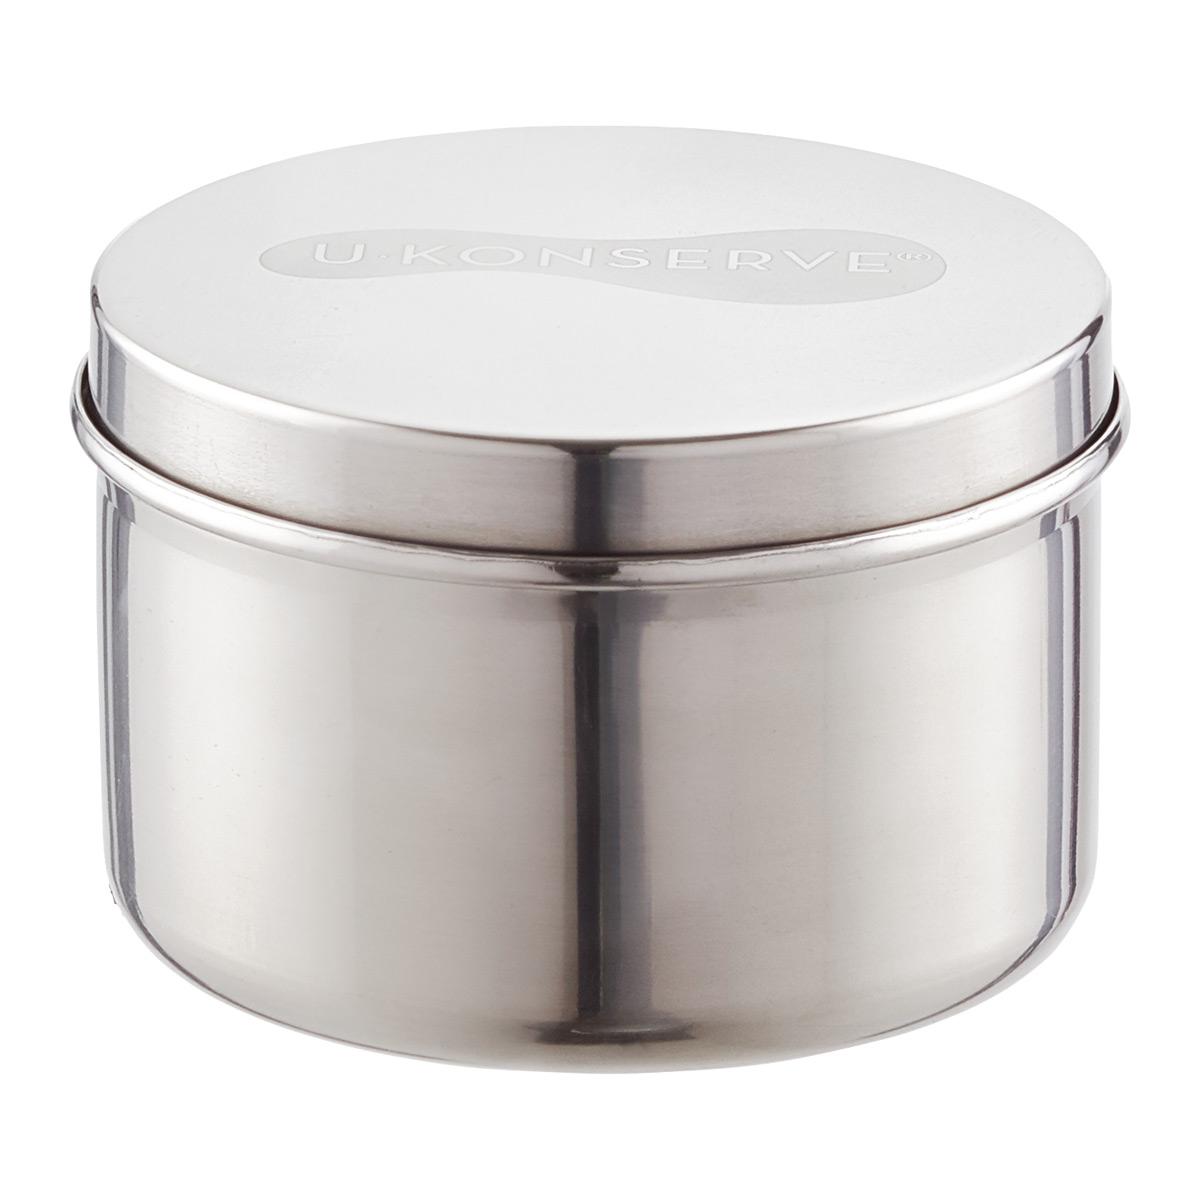 Big Mini Stainless Steel Container  sc 1 st  The Container Store & 7 oz. Big Mini Stainless Steel Container | The Container Store